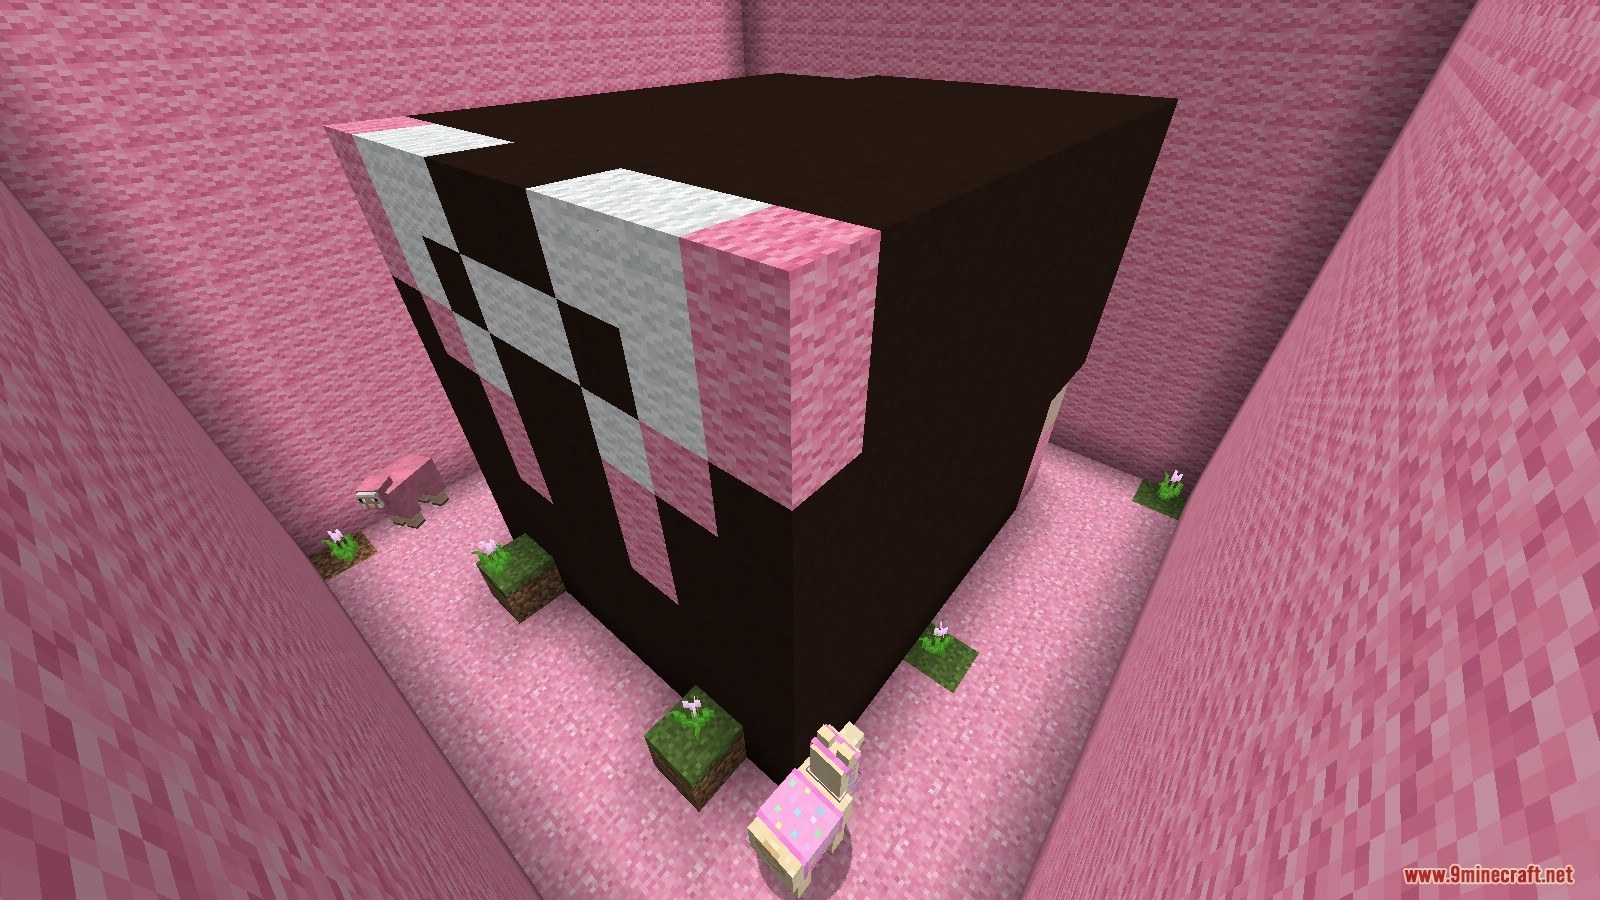 PopularMMOs Find The Button Map Screenshots (5)